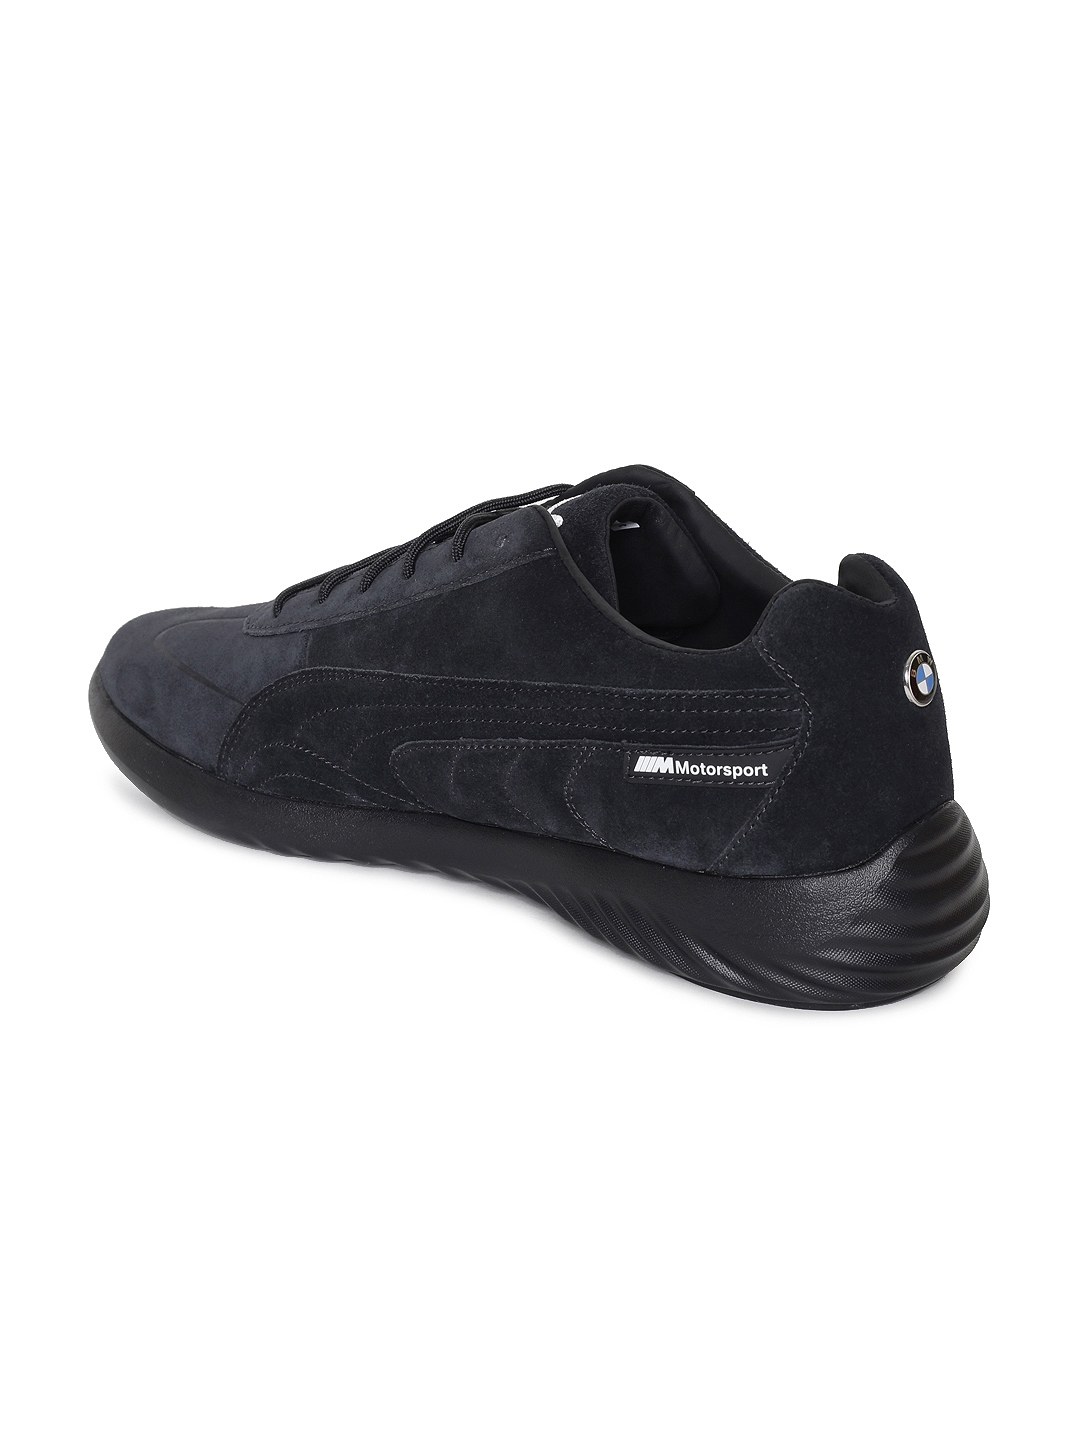 cheap for discount 7feed fb050 Puma Men Black Solid Suede BMW MS Speed Cat Evo Sneakers